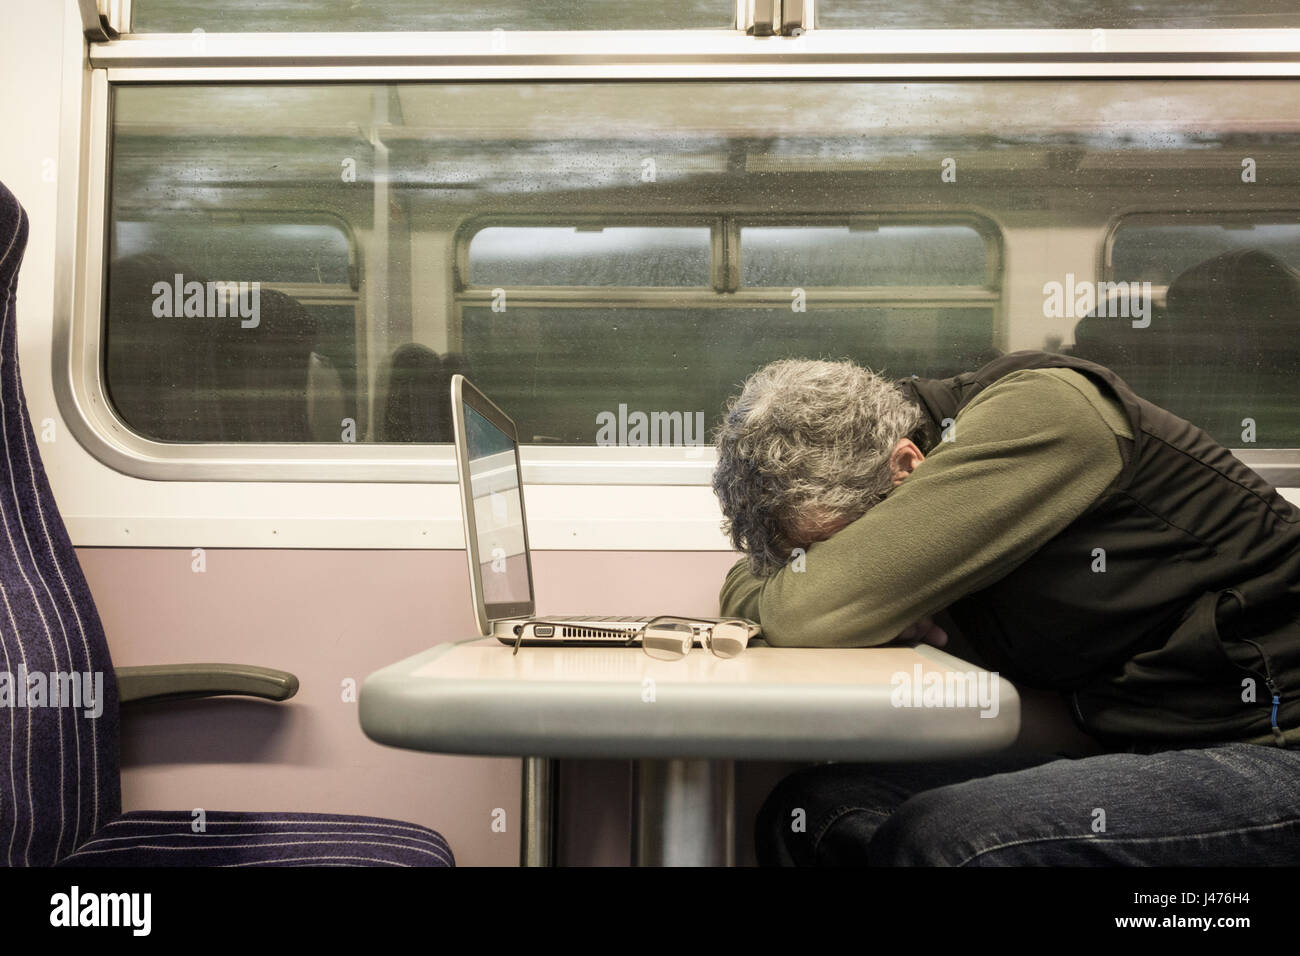 Train UK. Mature man with laptop sleeping at window seat on empty train with rain on window. England. United Kingdom - Stock Image